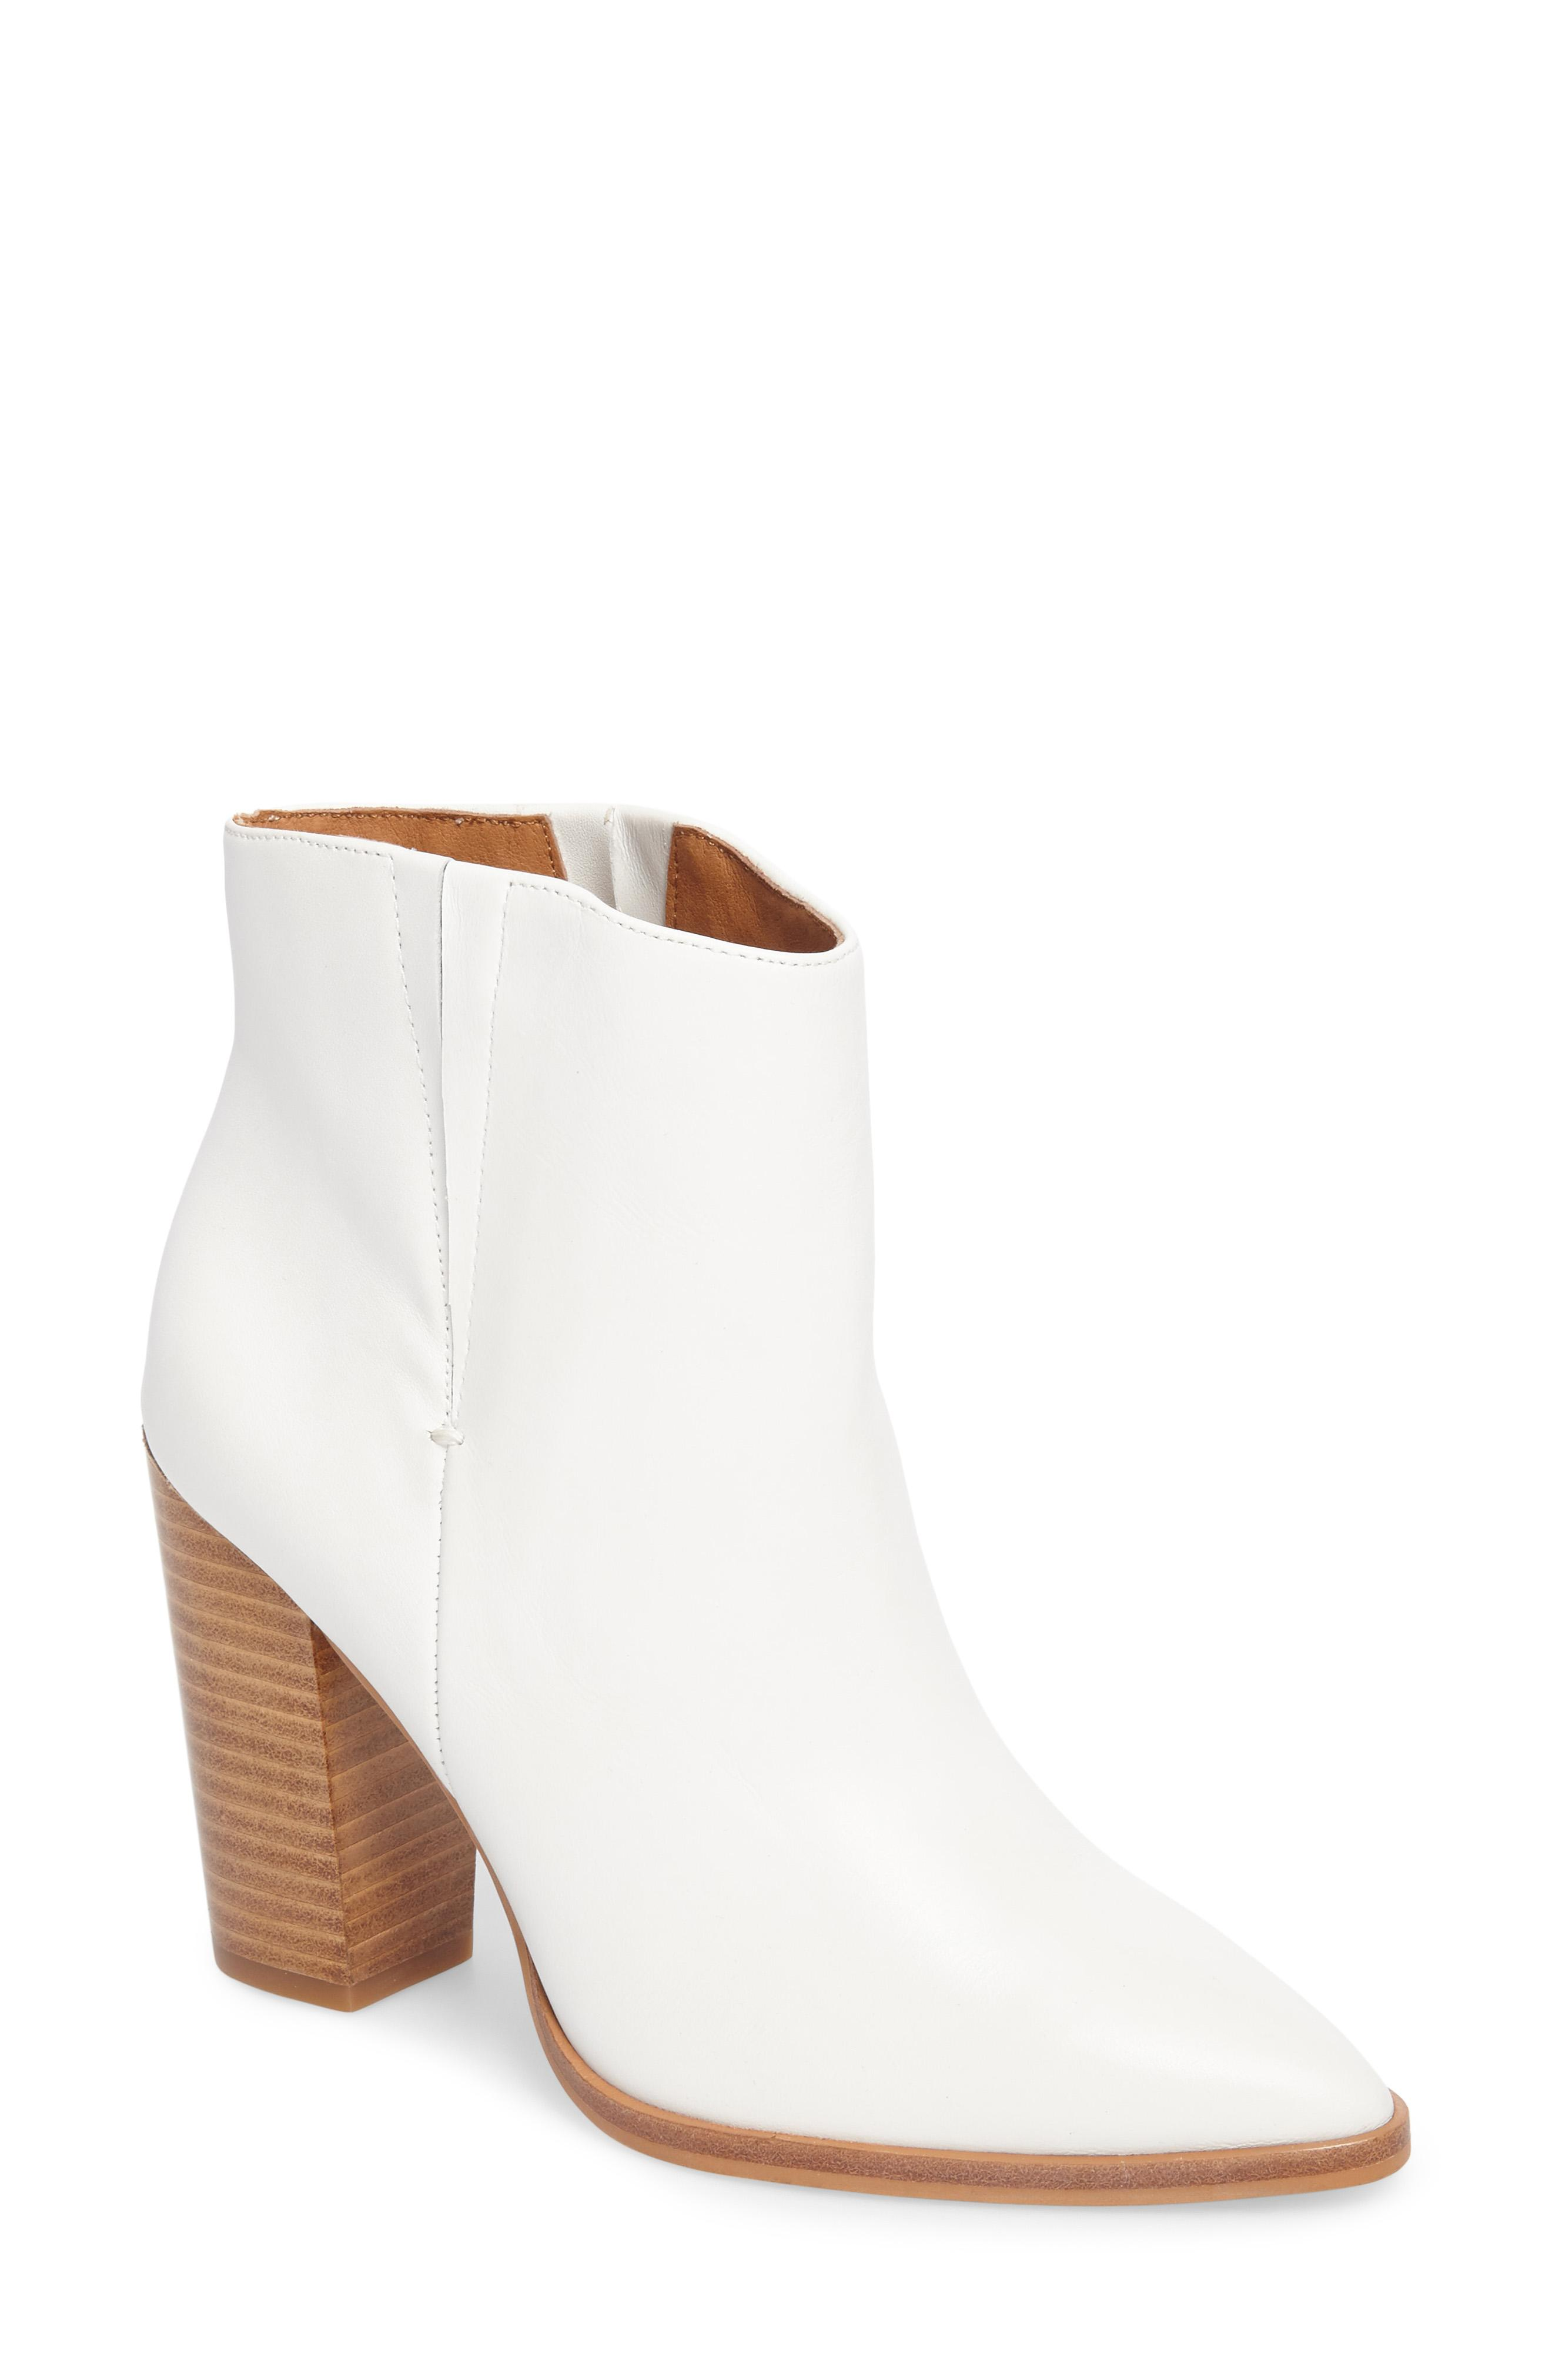 Halogen, Brock Bootie, $119.95,{&amp;nbsp;}can be purchased at Nordstrom.com{&amp;nbsp;}(Image: Courtesy Nordstrom)<p></p>